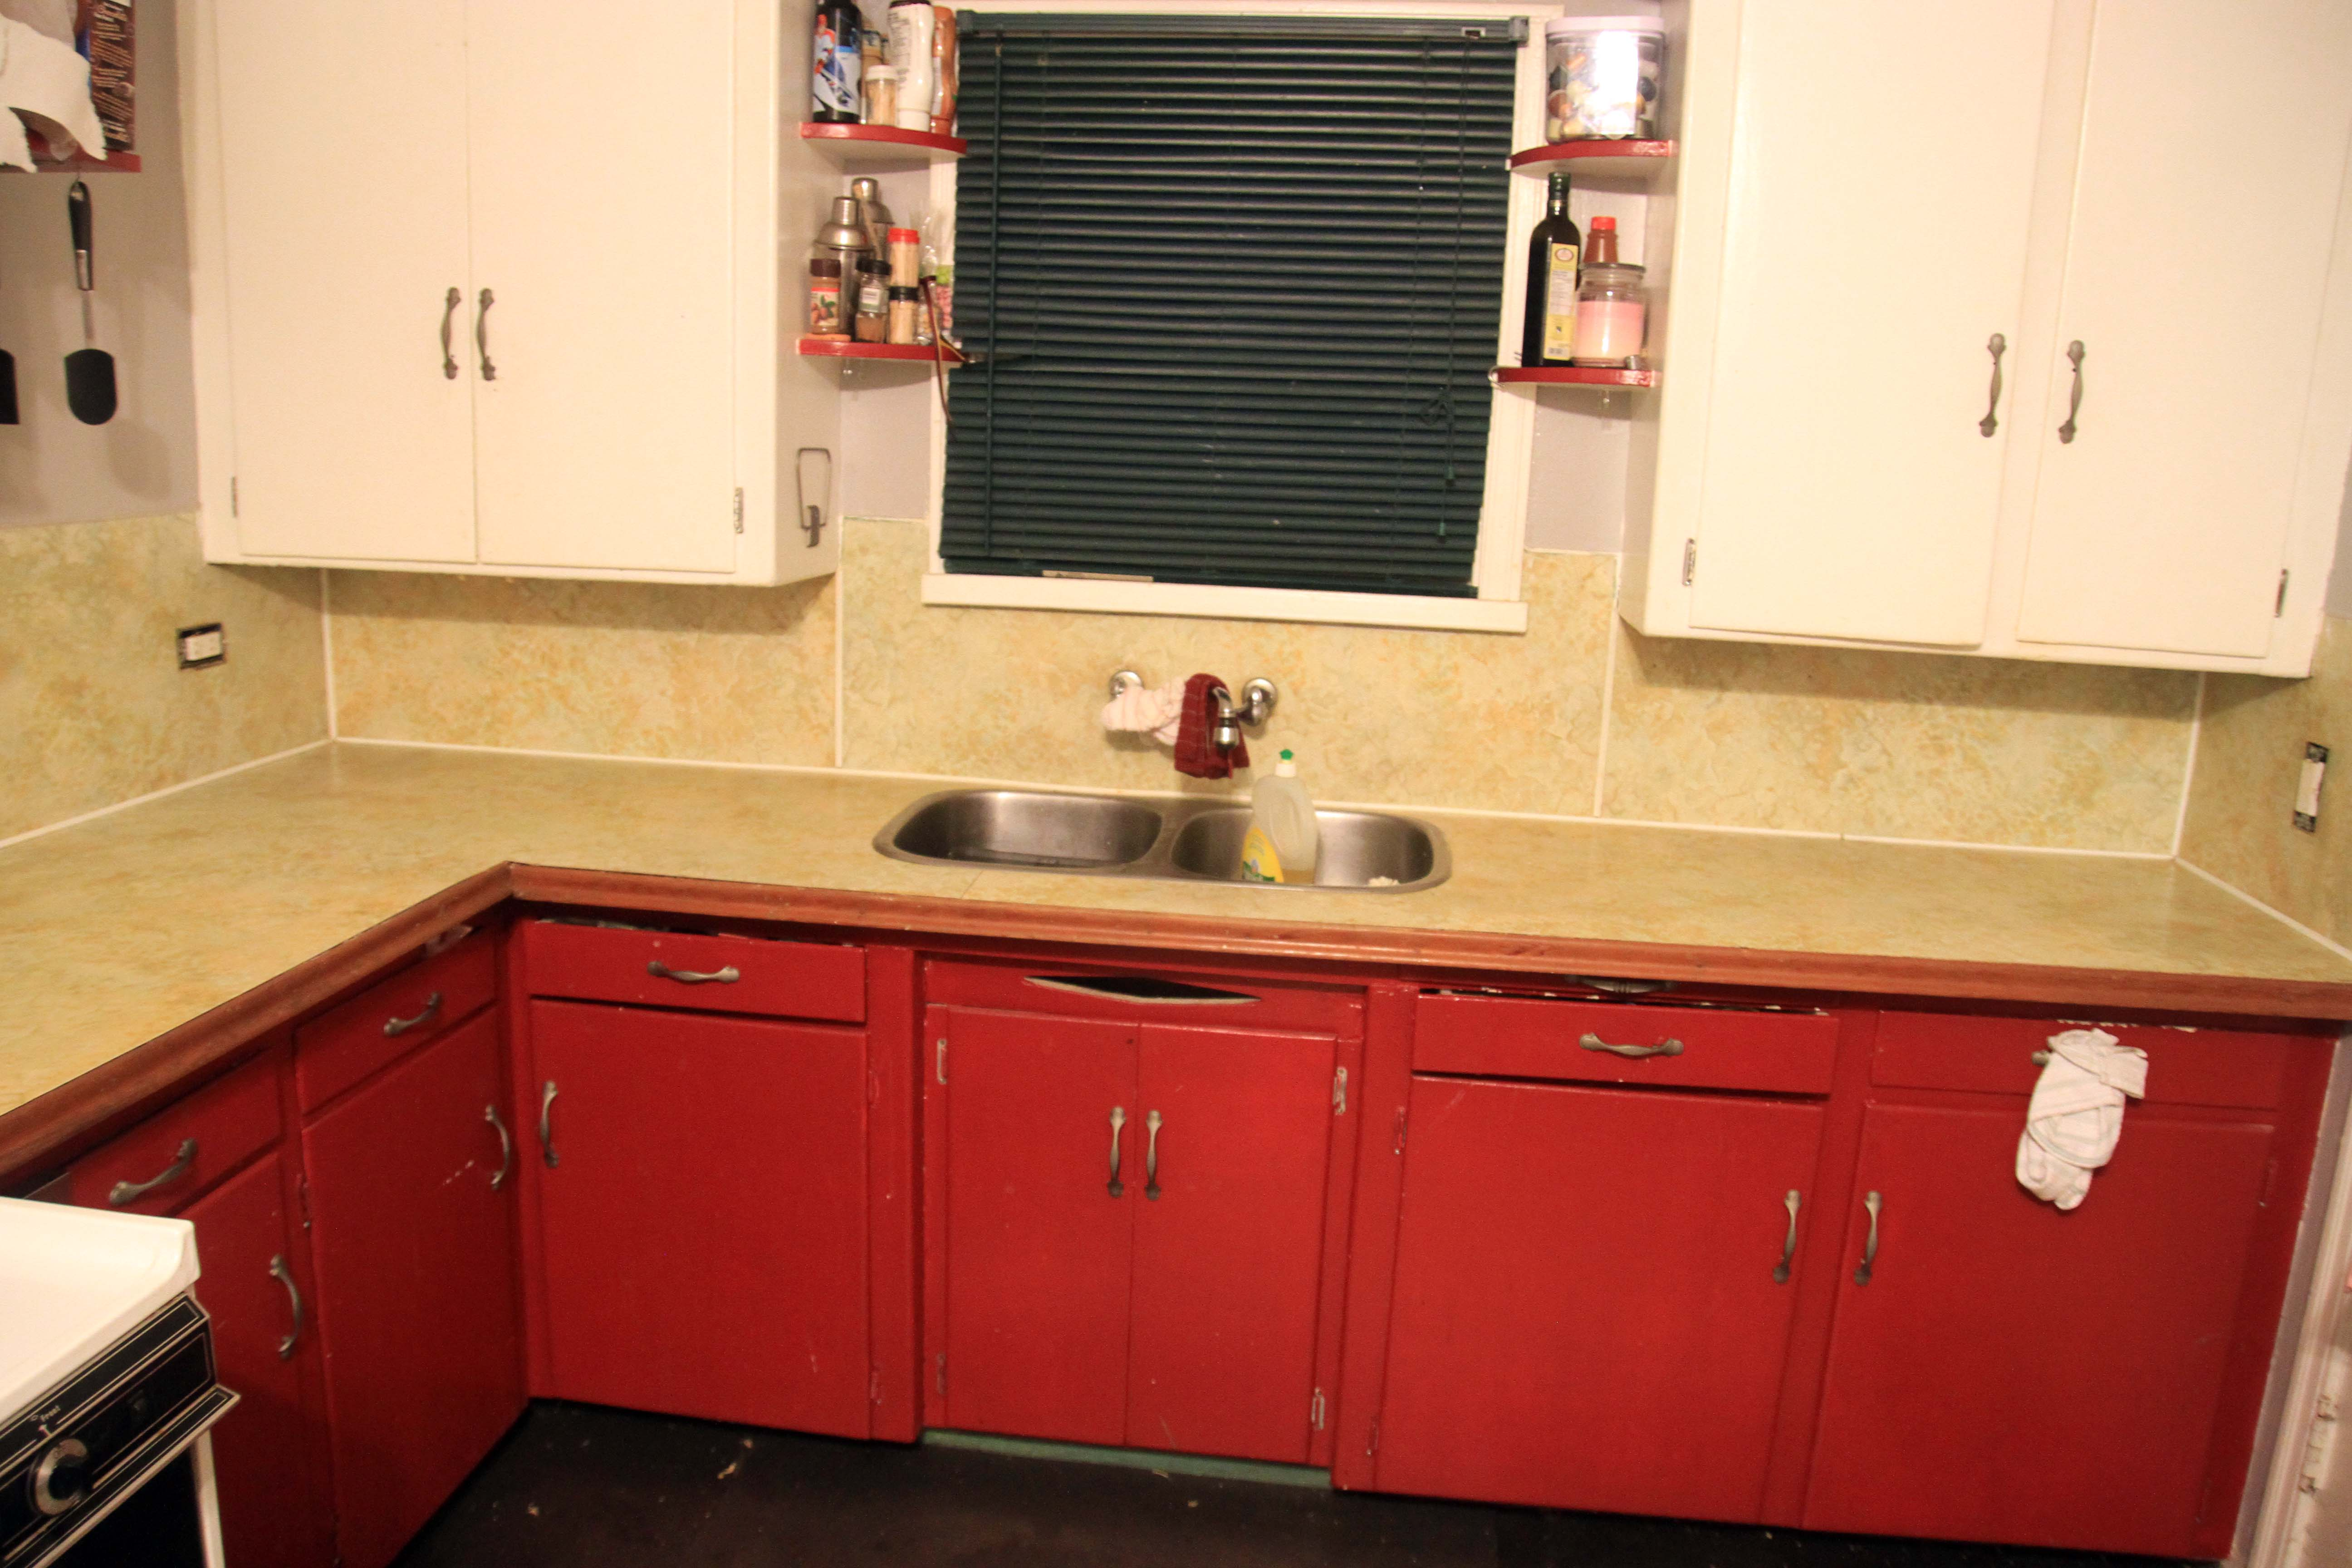 Countertop Paint Canadian Tire : ... rough finish. Any glossiness will not let the adhesive coating stick